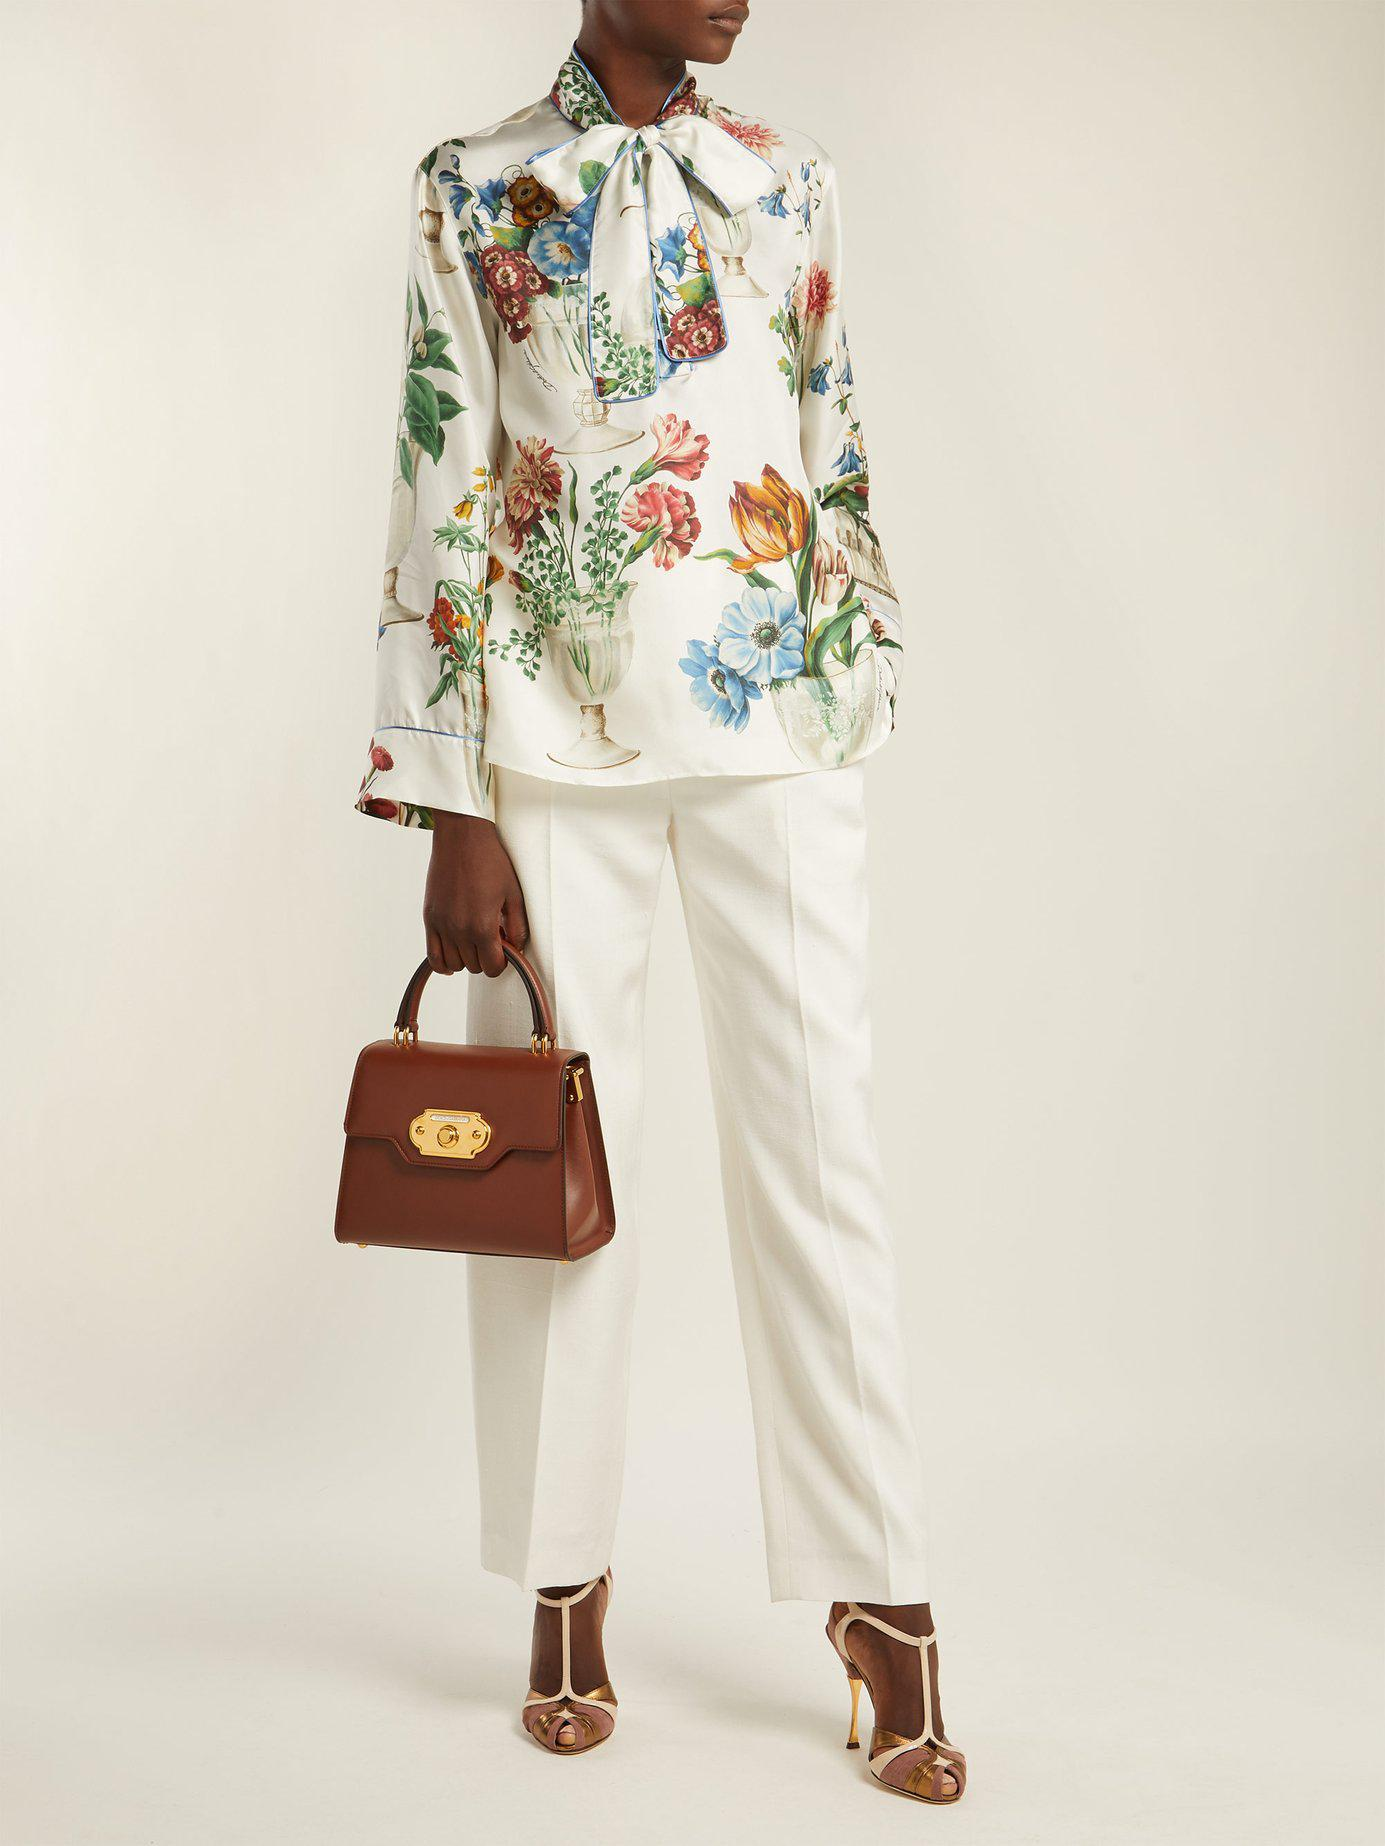 8bb0c16d84e9 Dolce   Gabbana - Multicolor Floral And Vase Print Silk Blouse - Lyst. View  fullscreen